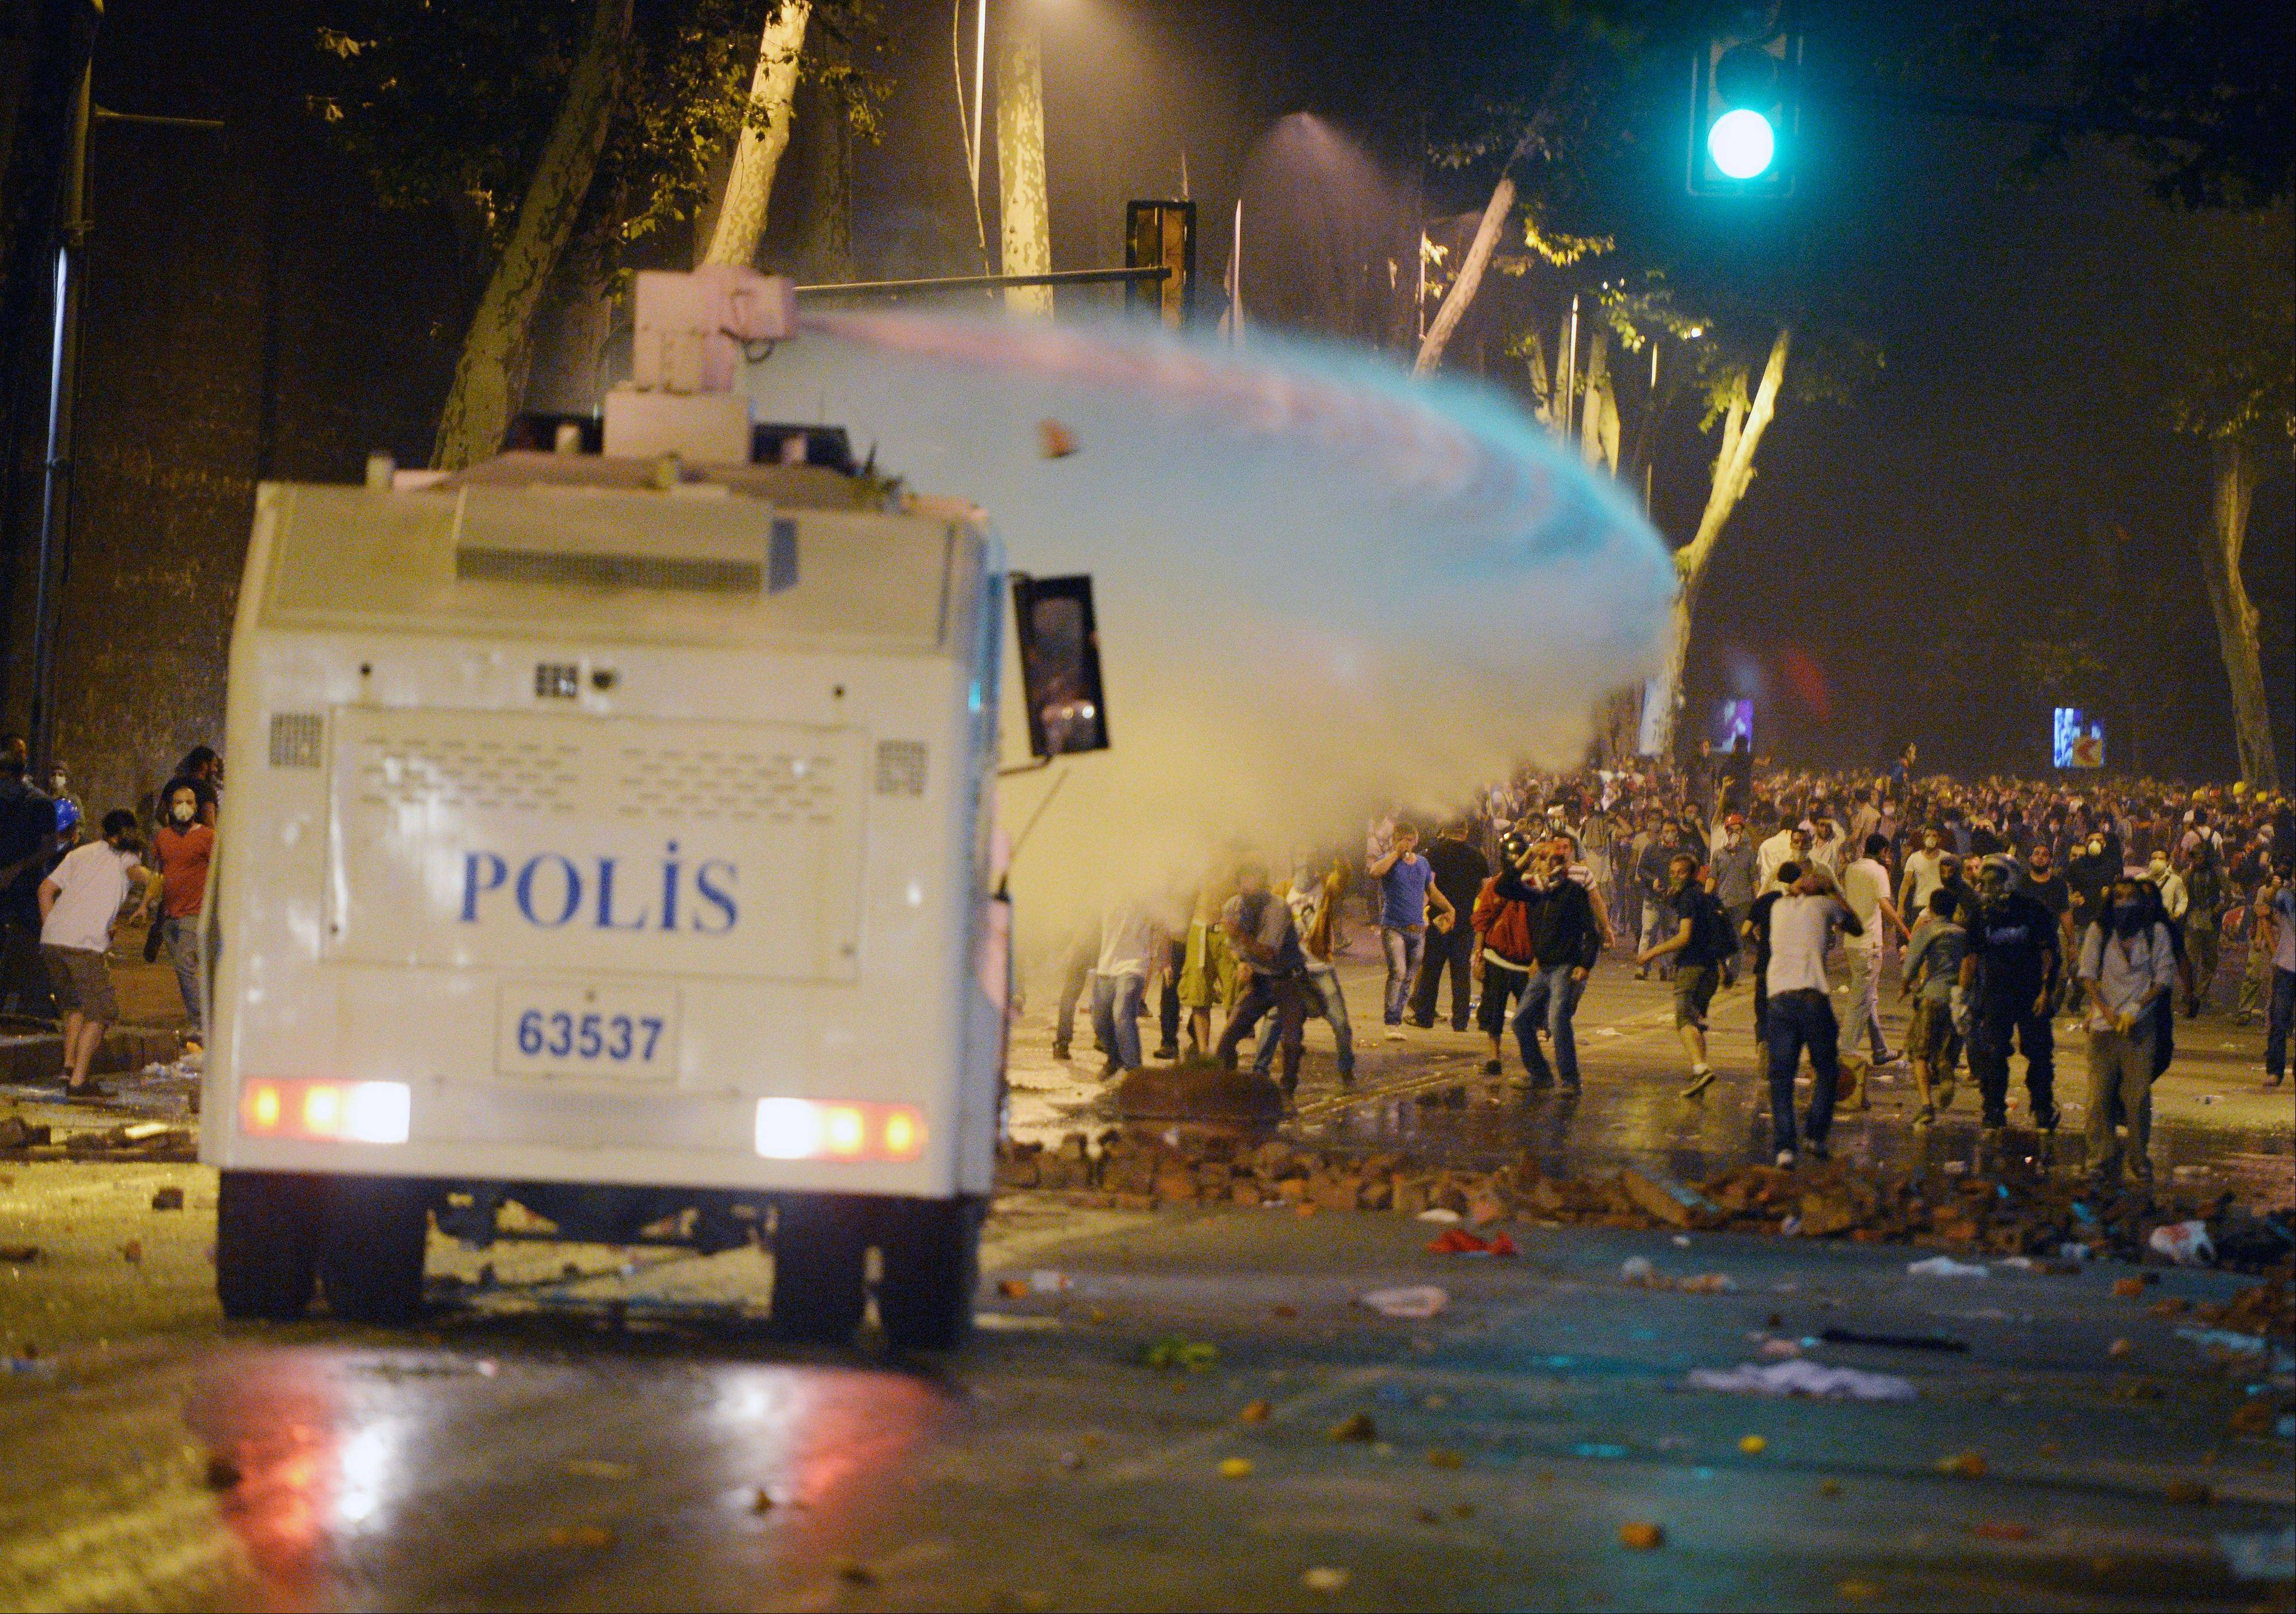 Turkish police retreated from a main Istanbul square Saturday, removing barricades and allowing in thousands of protesters in a move to calm tensions after furious anti-government protests turned the city center into a battlefield.